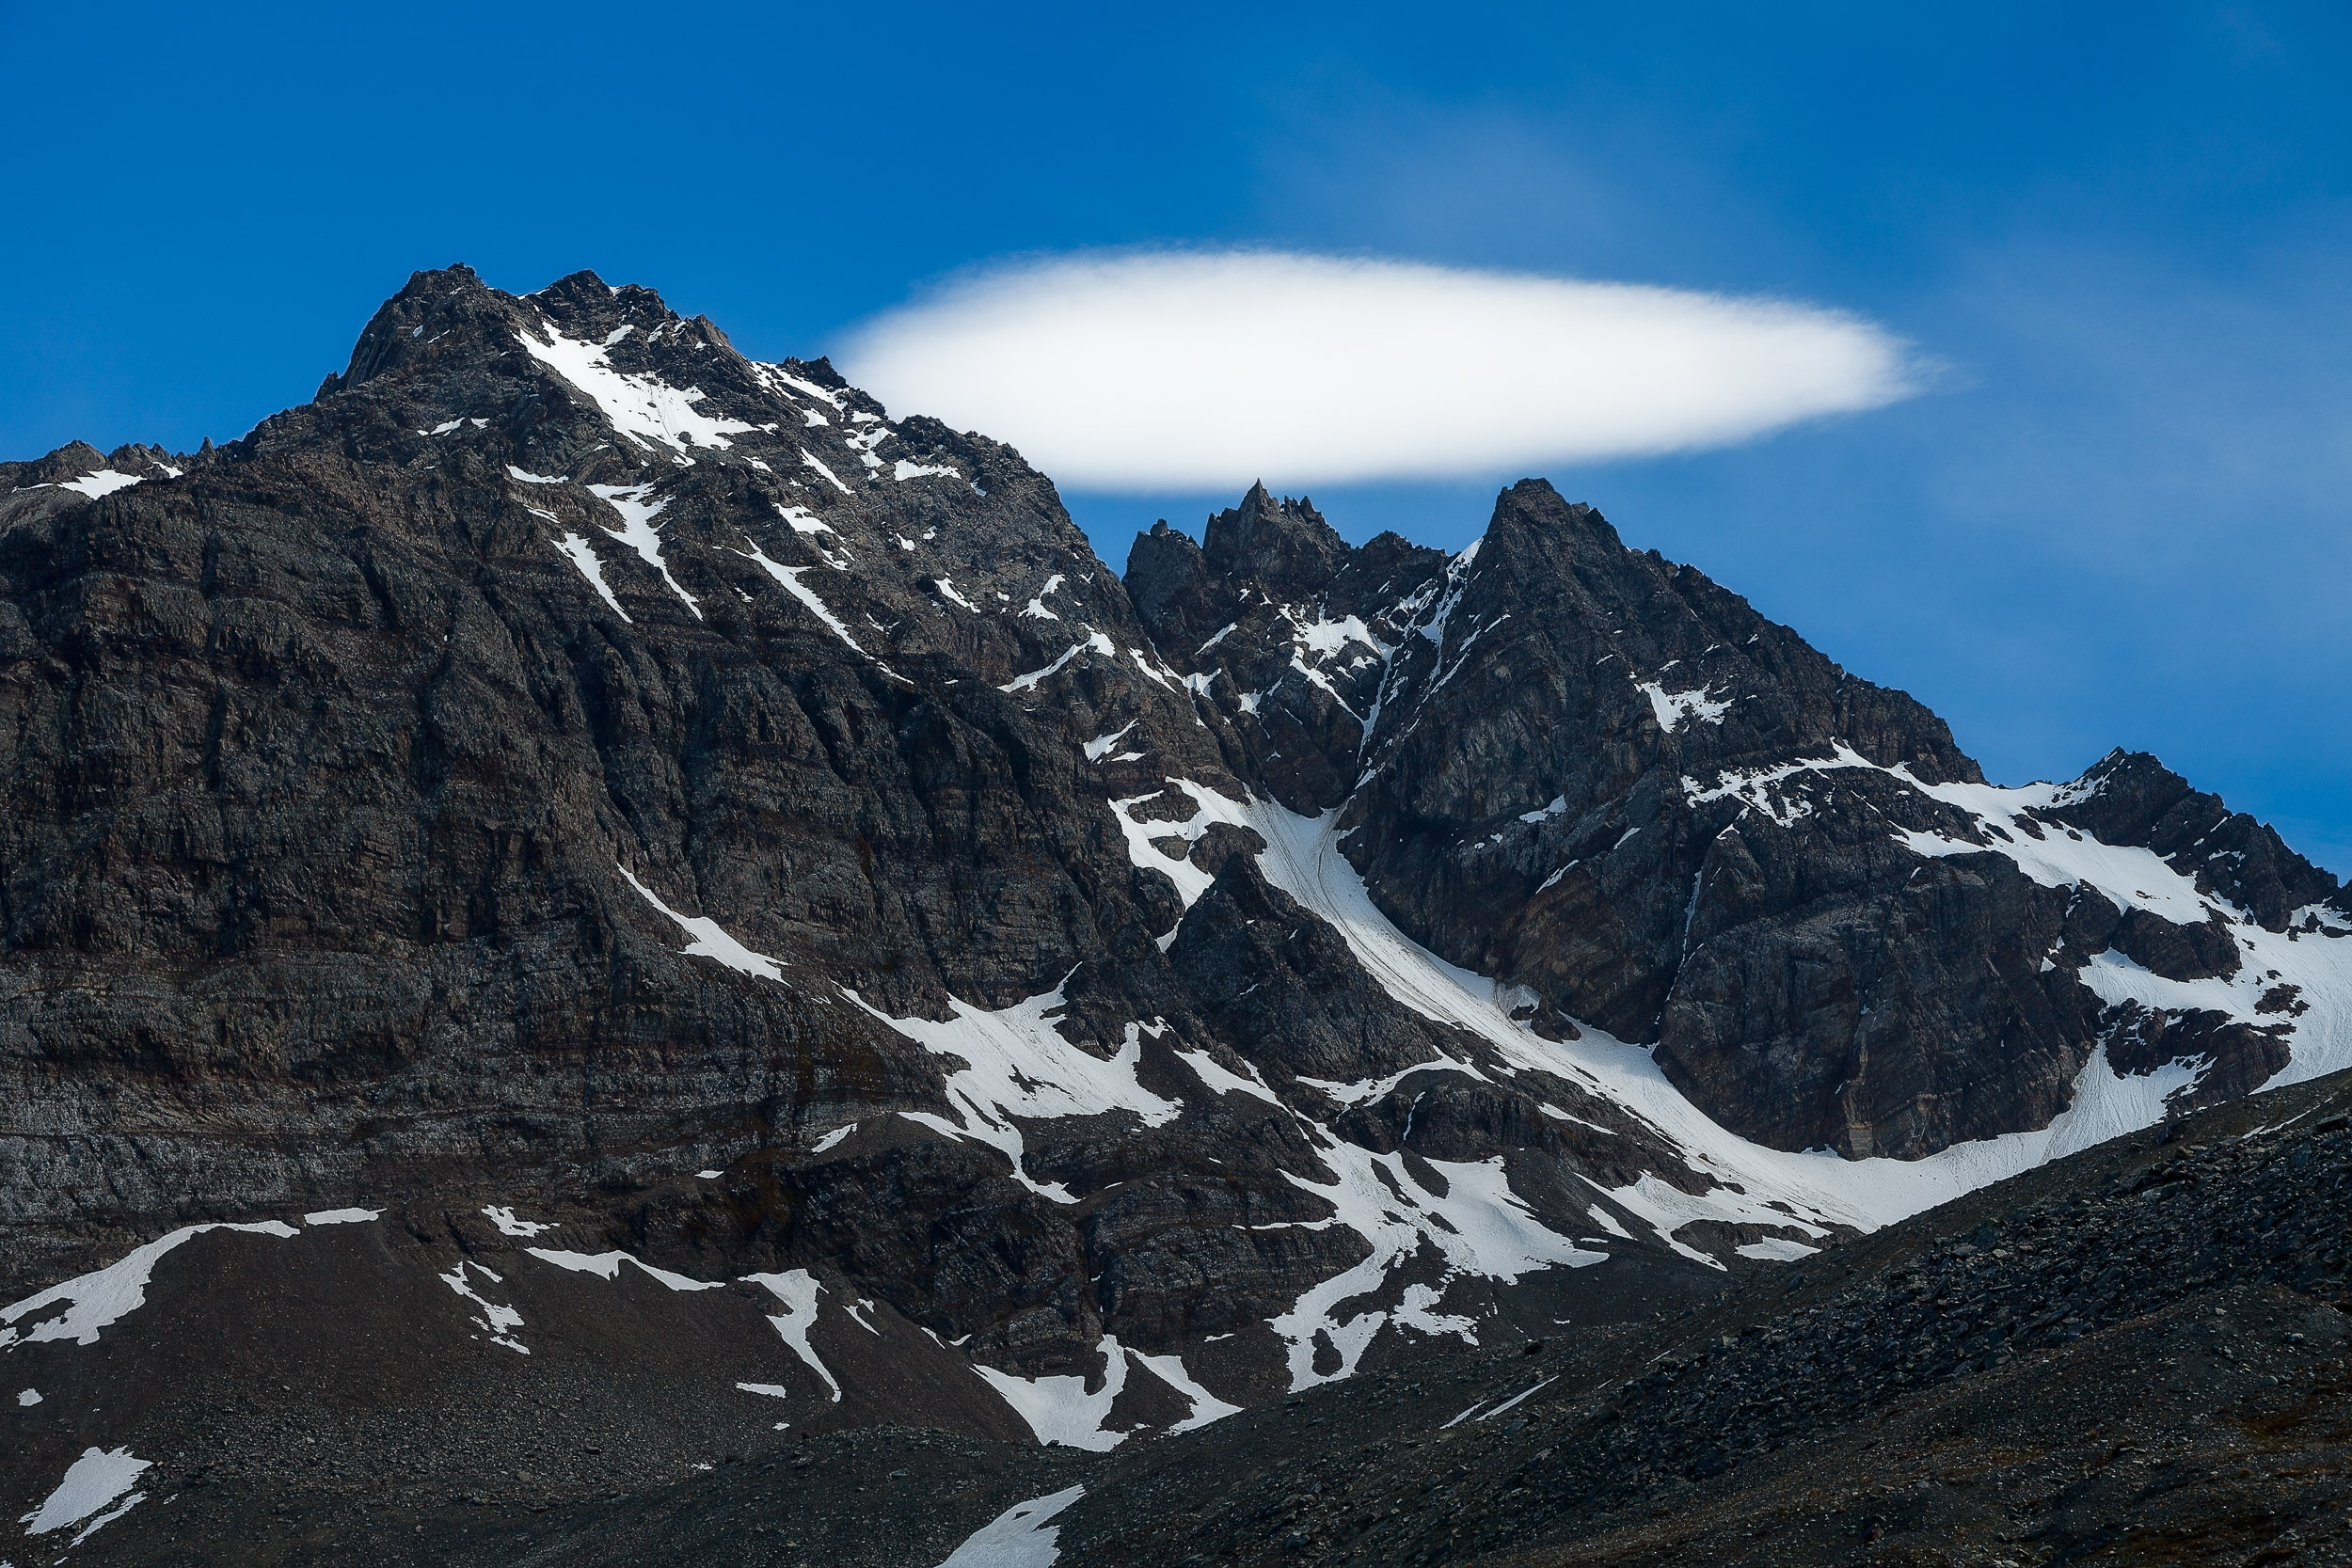 A spectacular view of a low lying cloud hovering over mountain peaks on  South Georgia Island .